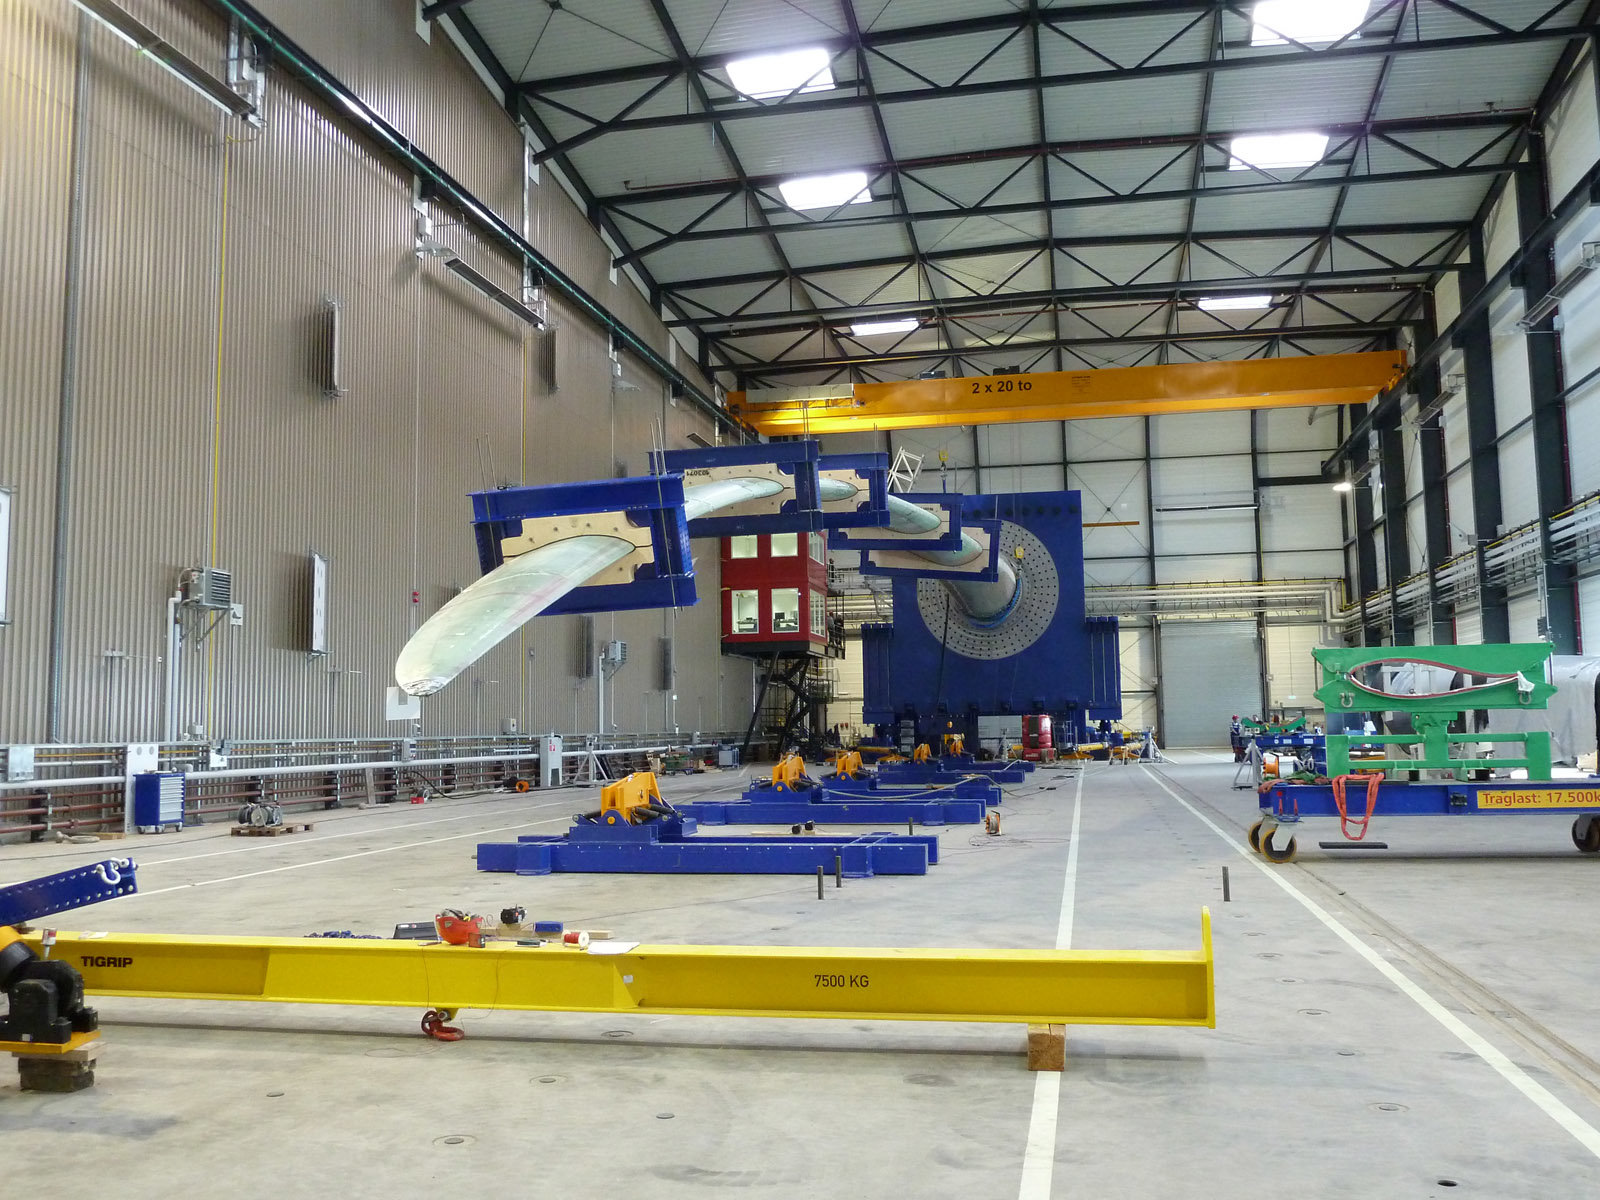 Inspecting Rotor Blades With Thermography And Acoustic